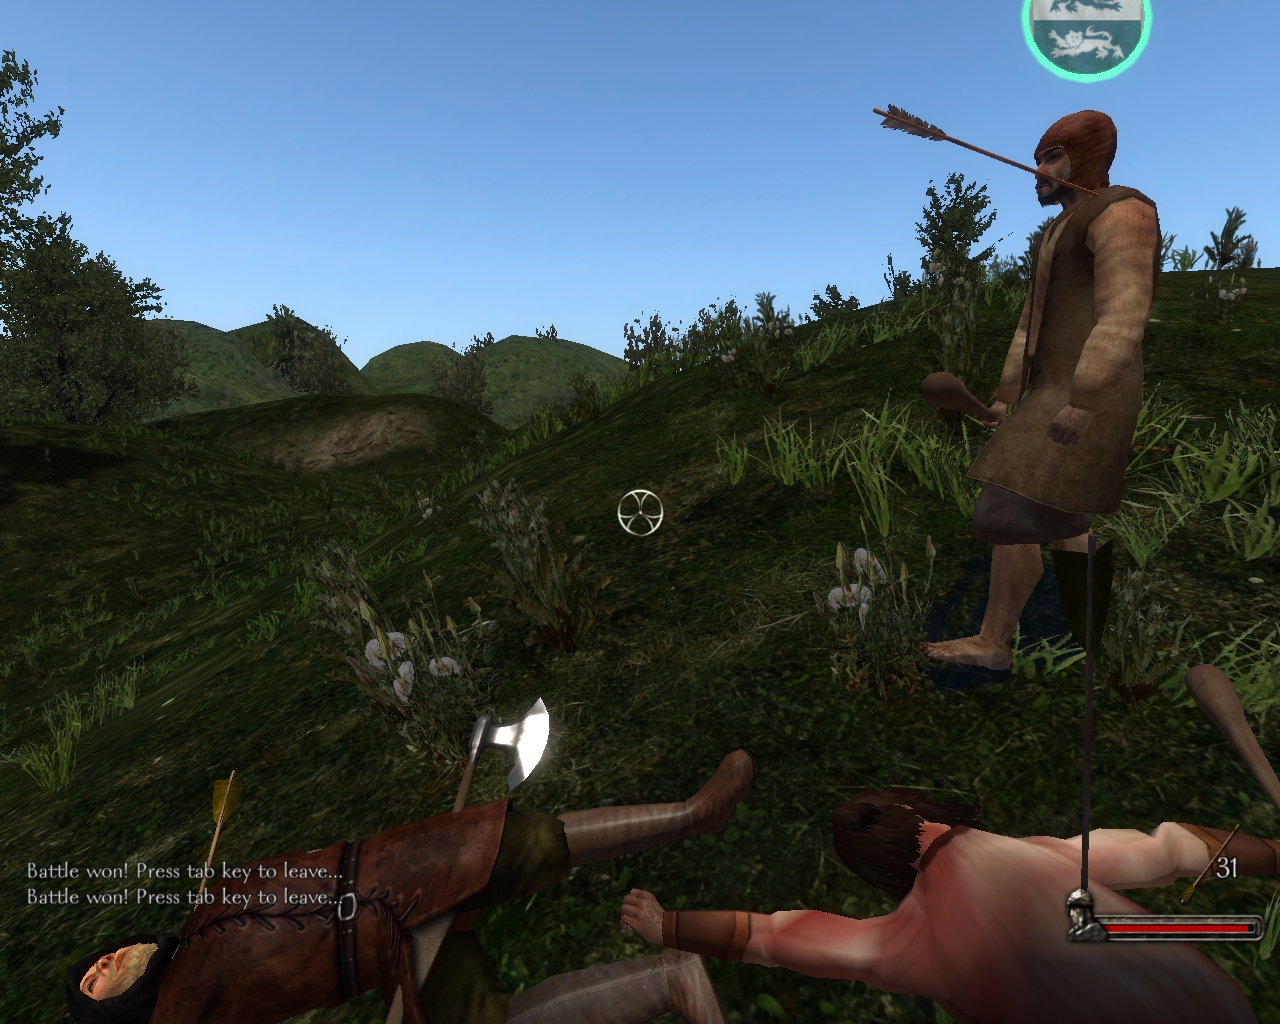 Mount and blade warband sex mods fucking photo